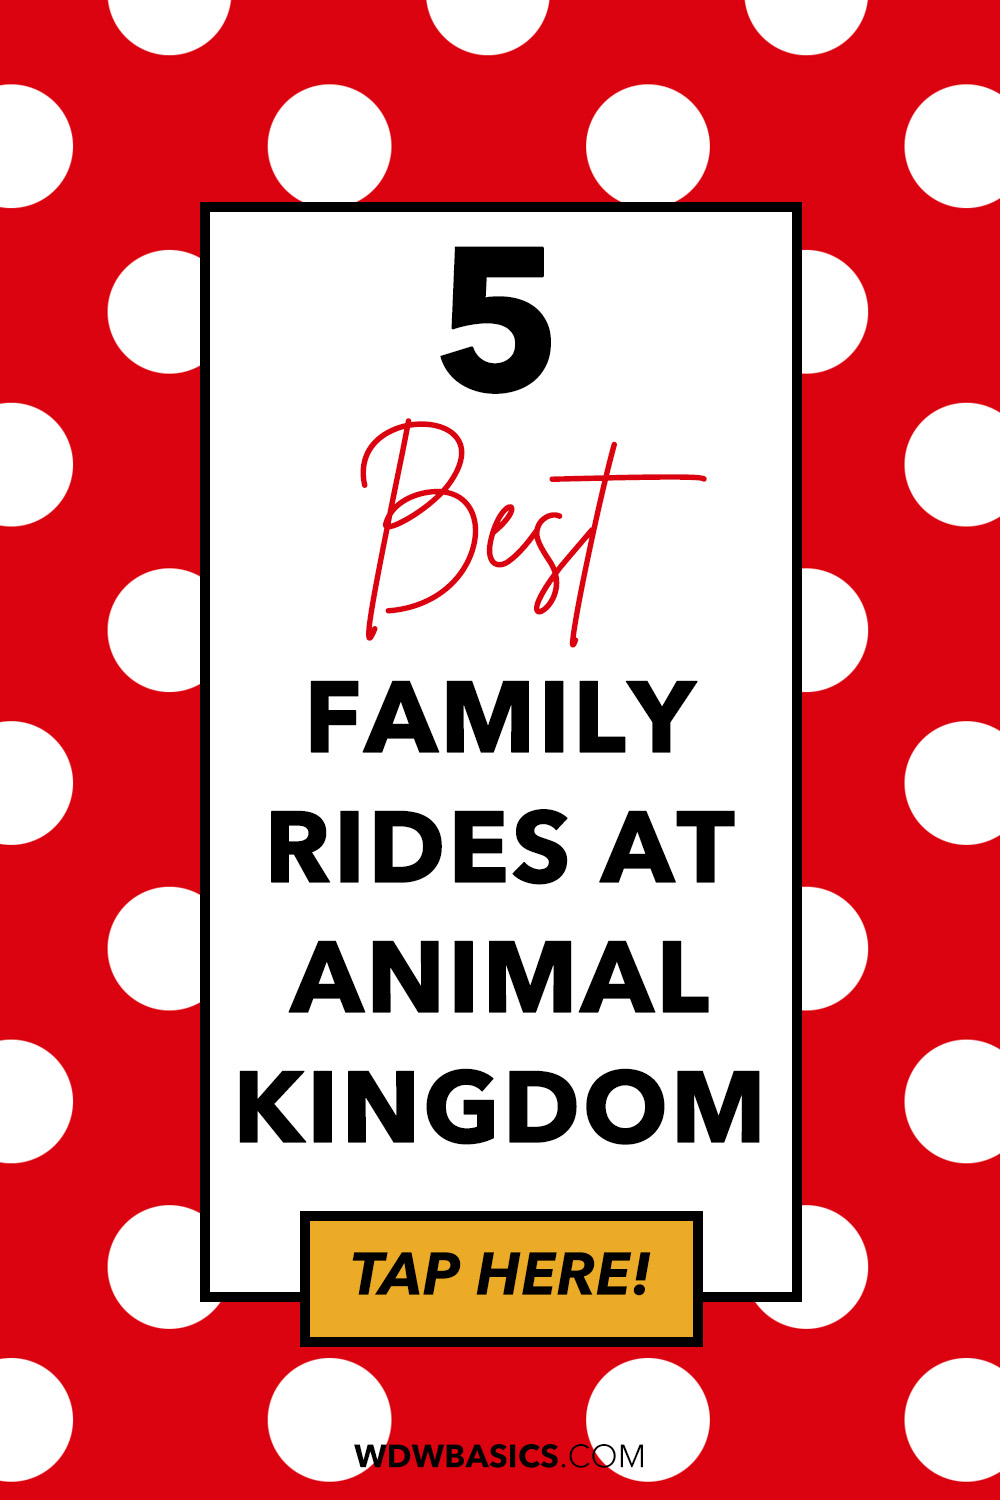 Best Animal Kingdom Rides for families